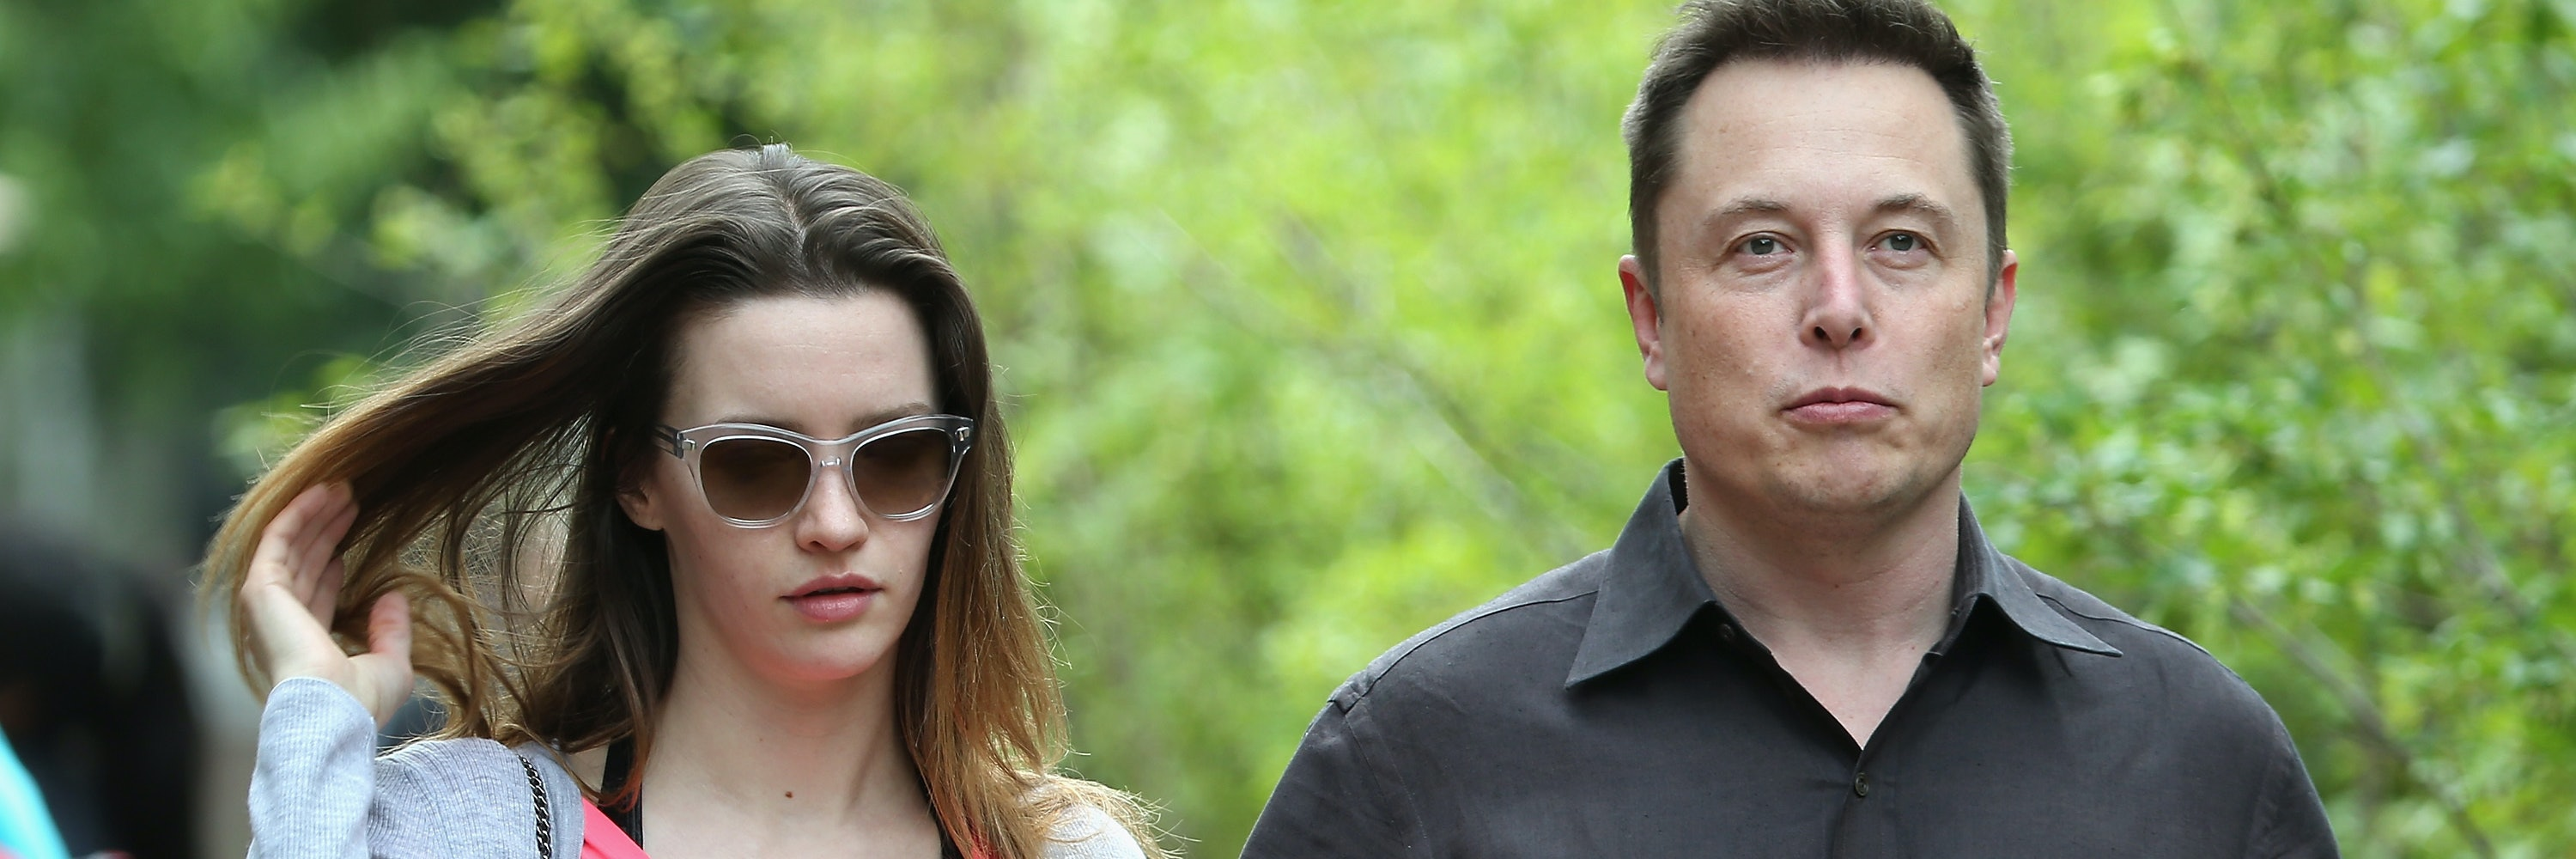 Elon Musk, CEO and CTO of SpaceX, CEO and product architect of Tesla Motors, and chairman of SolarCity, and his wife Talulah Riley attend the Allen & Company Sun Valley Conference on July 8, 2015 in Sun Valley, Idaho. Many of the worlds wealthiest and most powerful business people from media, finance, and technology attend the annual week-long conference which is in its 33nd year.